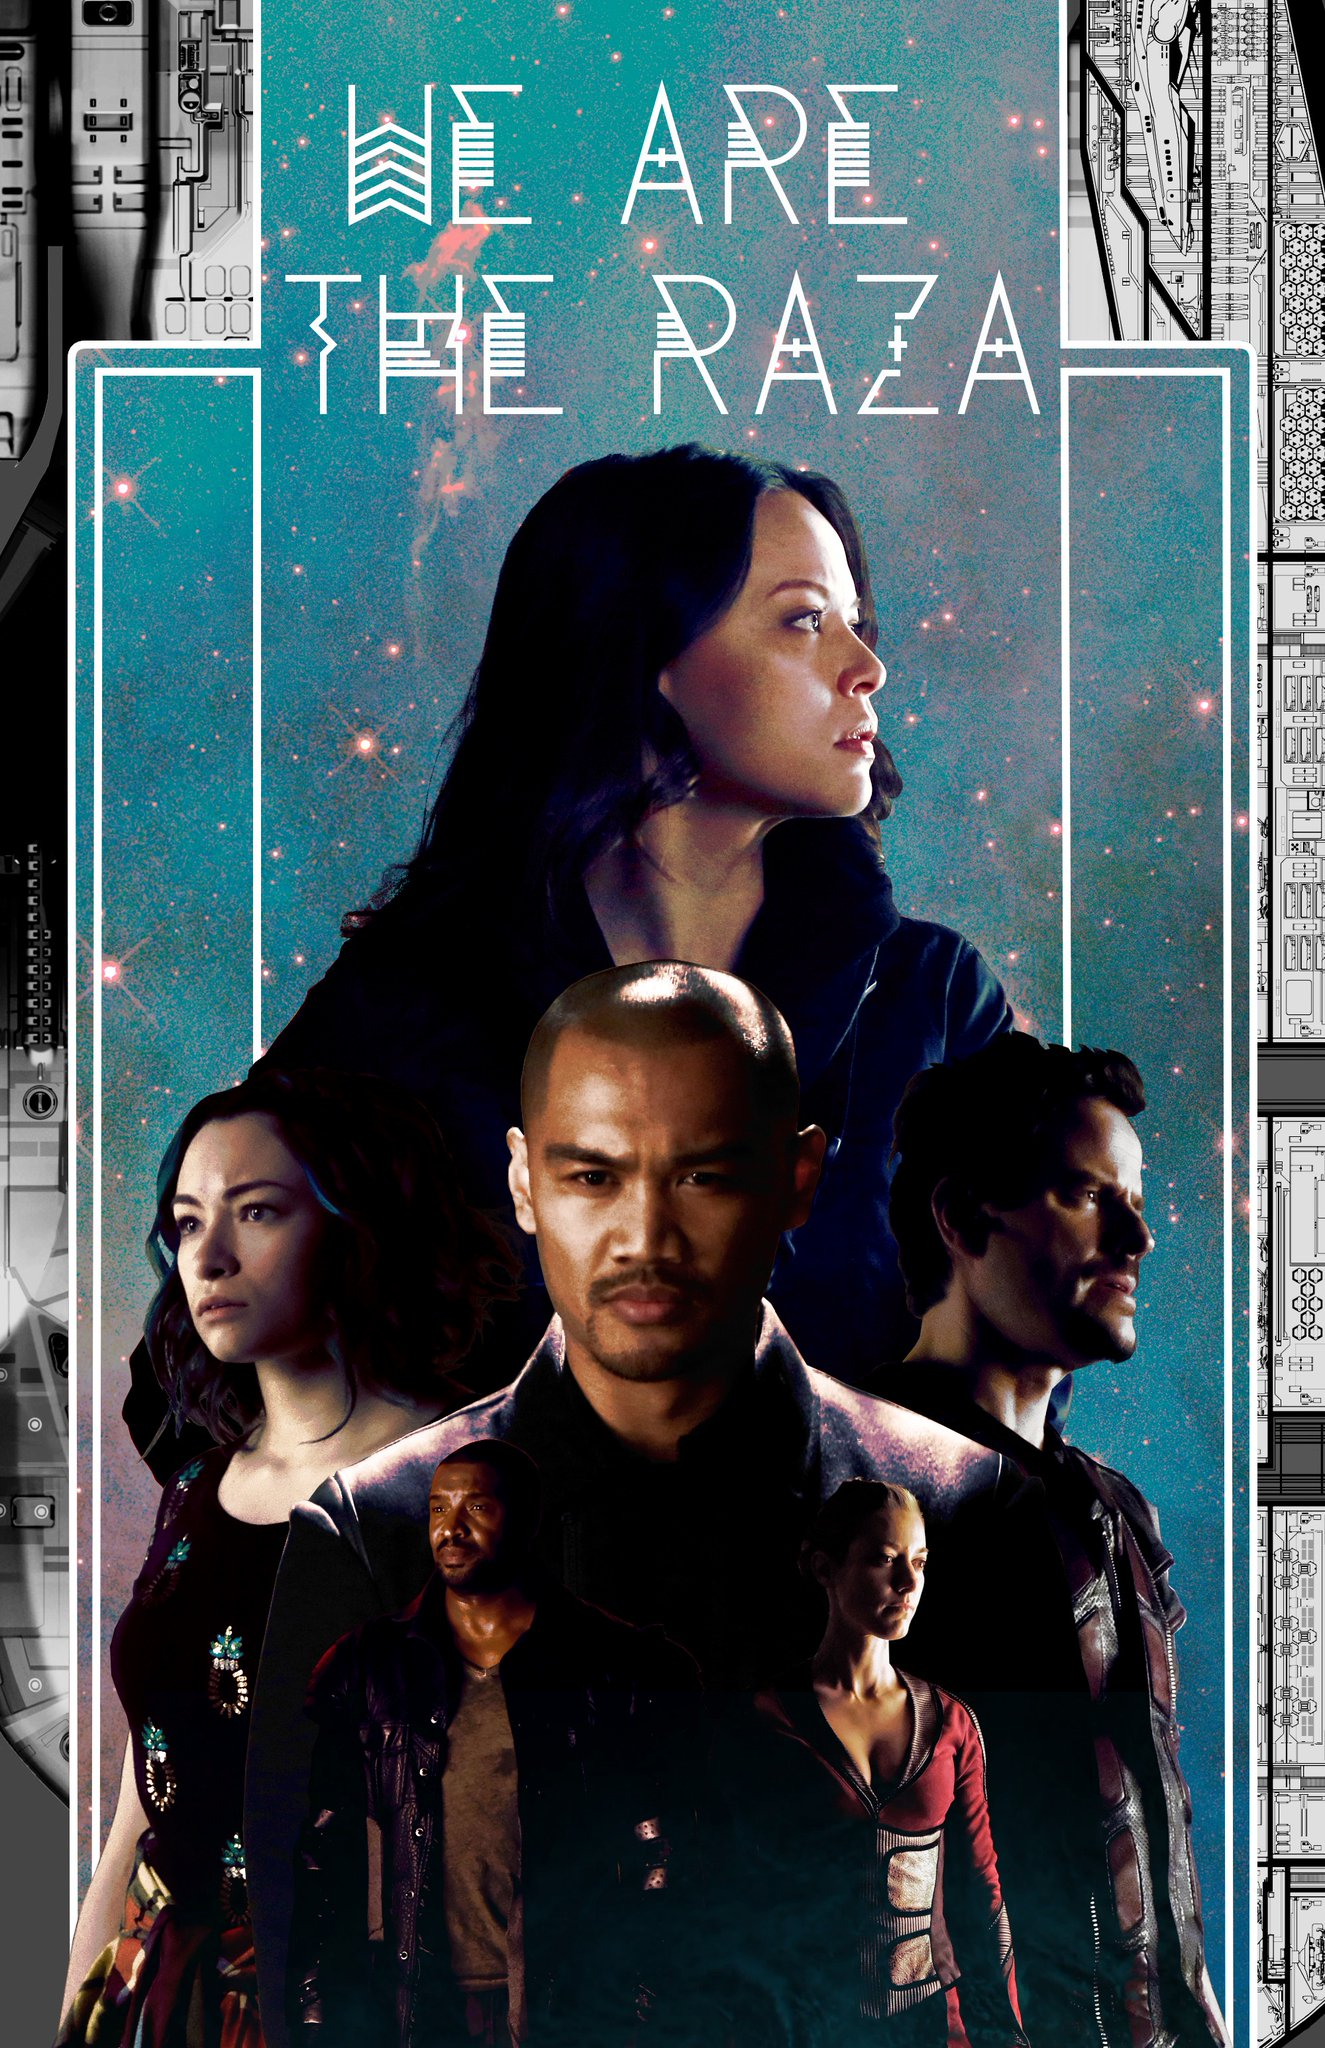 June 12, 2018: Happy Dark Matter Day! | Joseph Mallozzi's Weblog